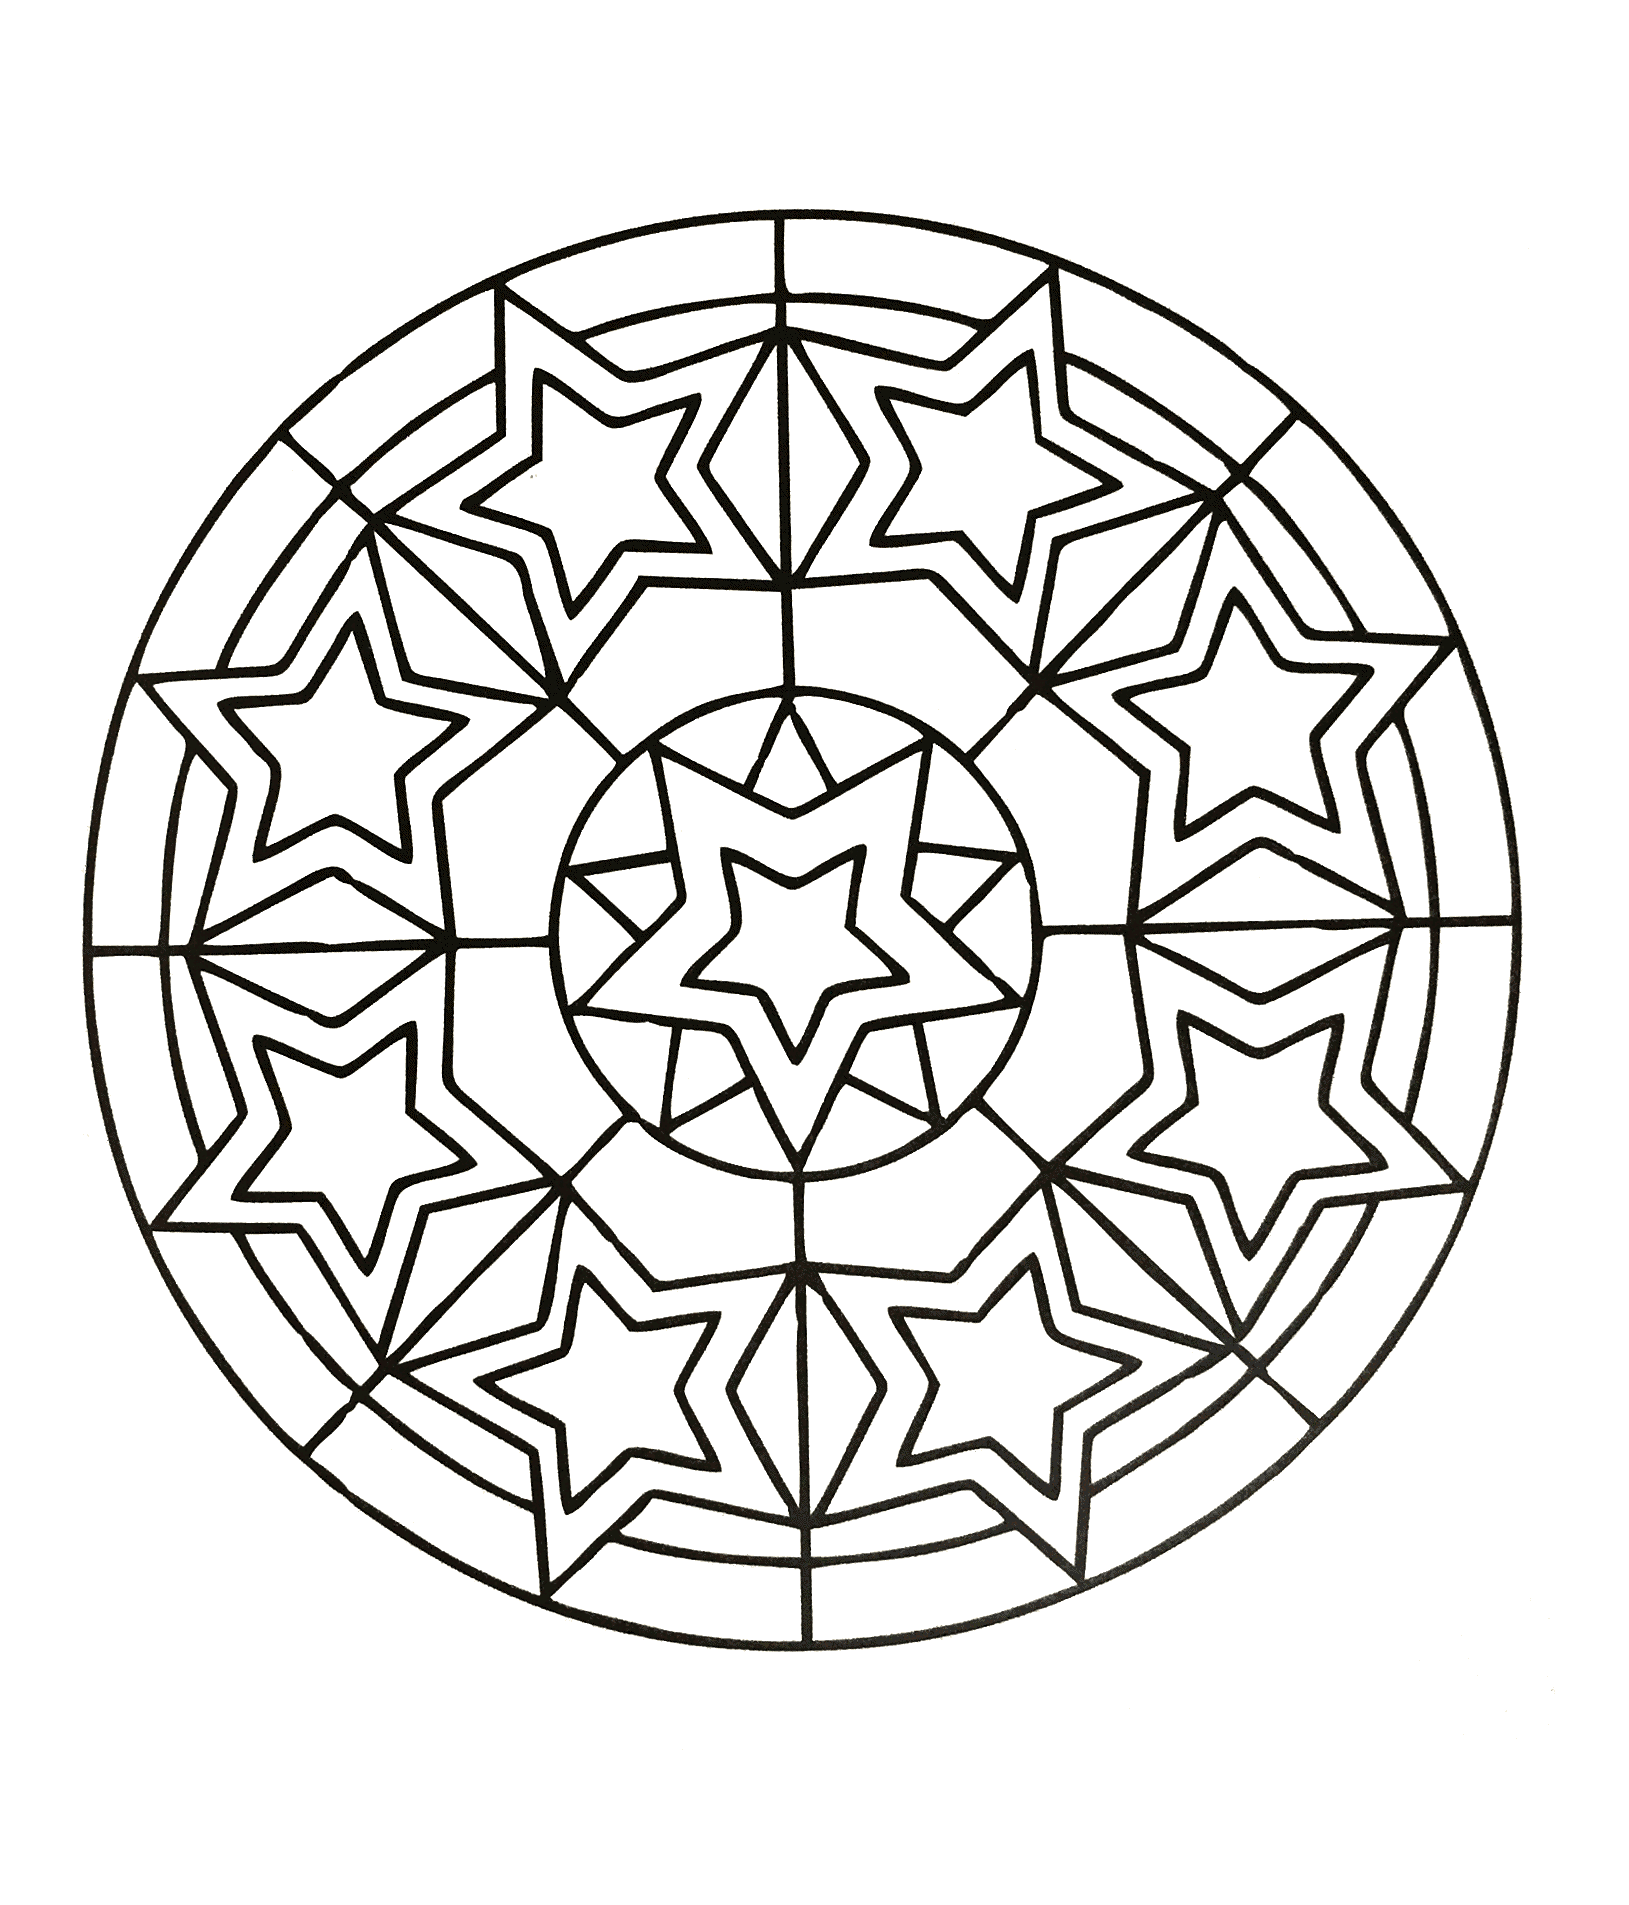 Mandala to download 10